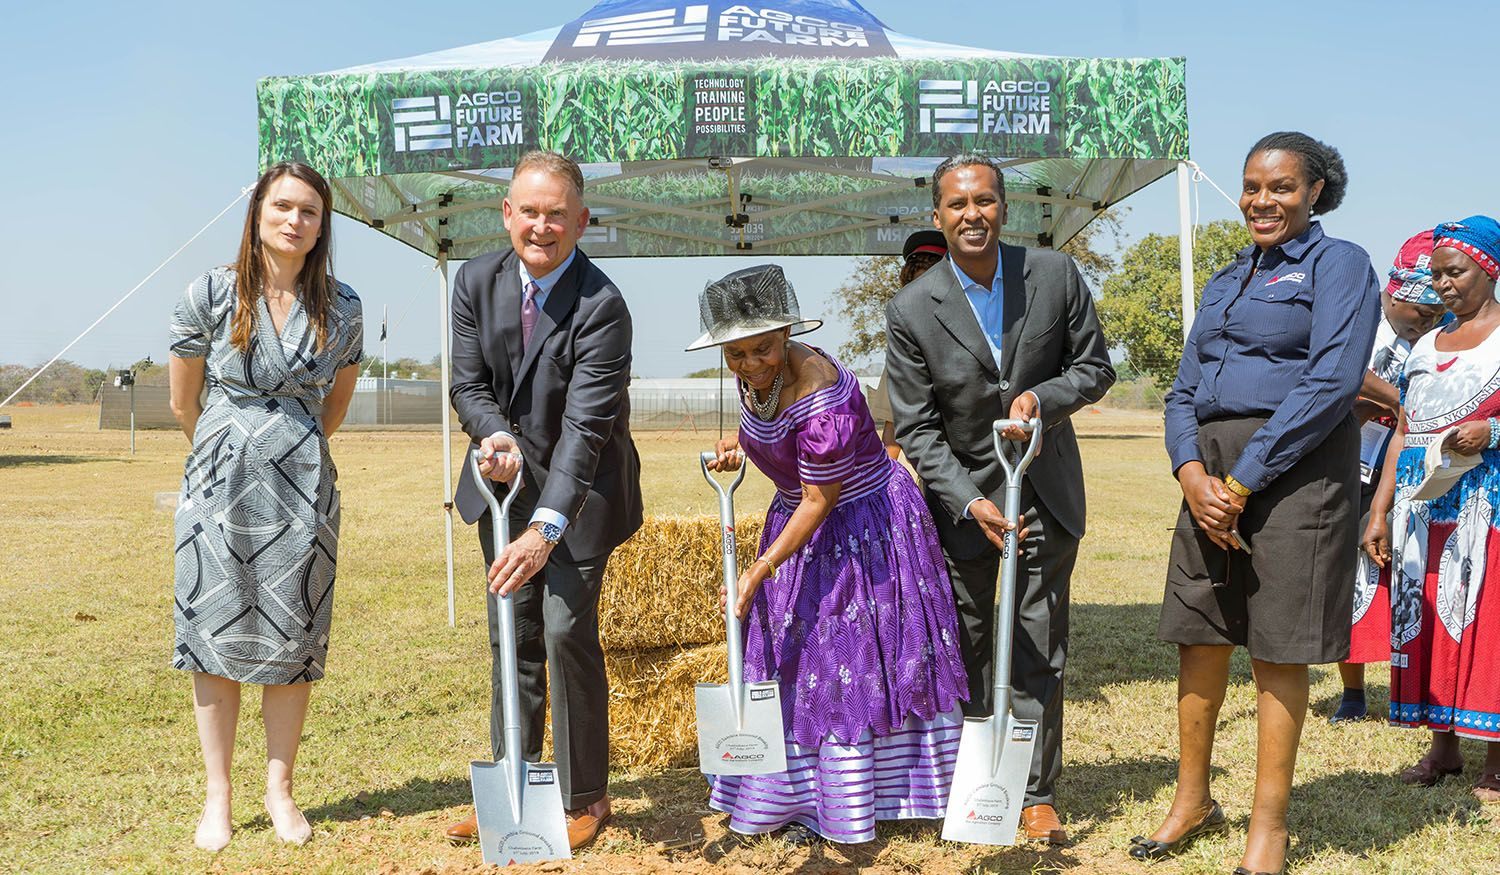 AGCO makes a significant investment towards the expansion of the Future Farm training facility in Zambia